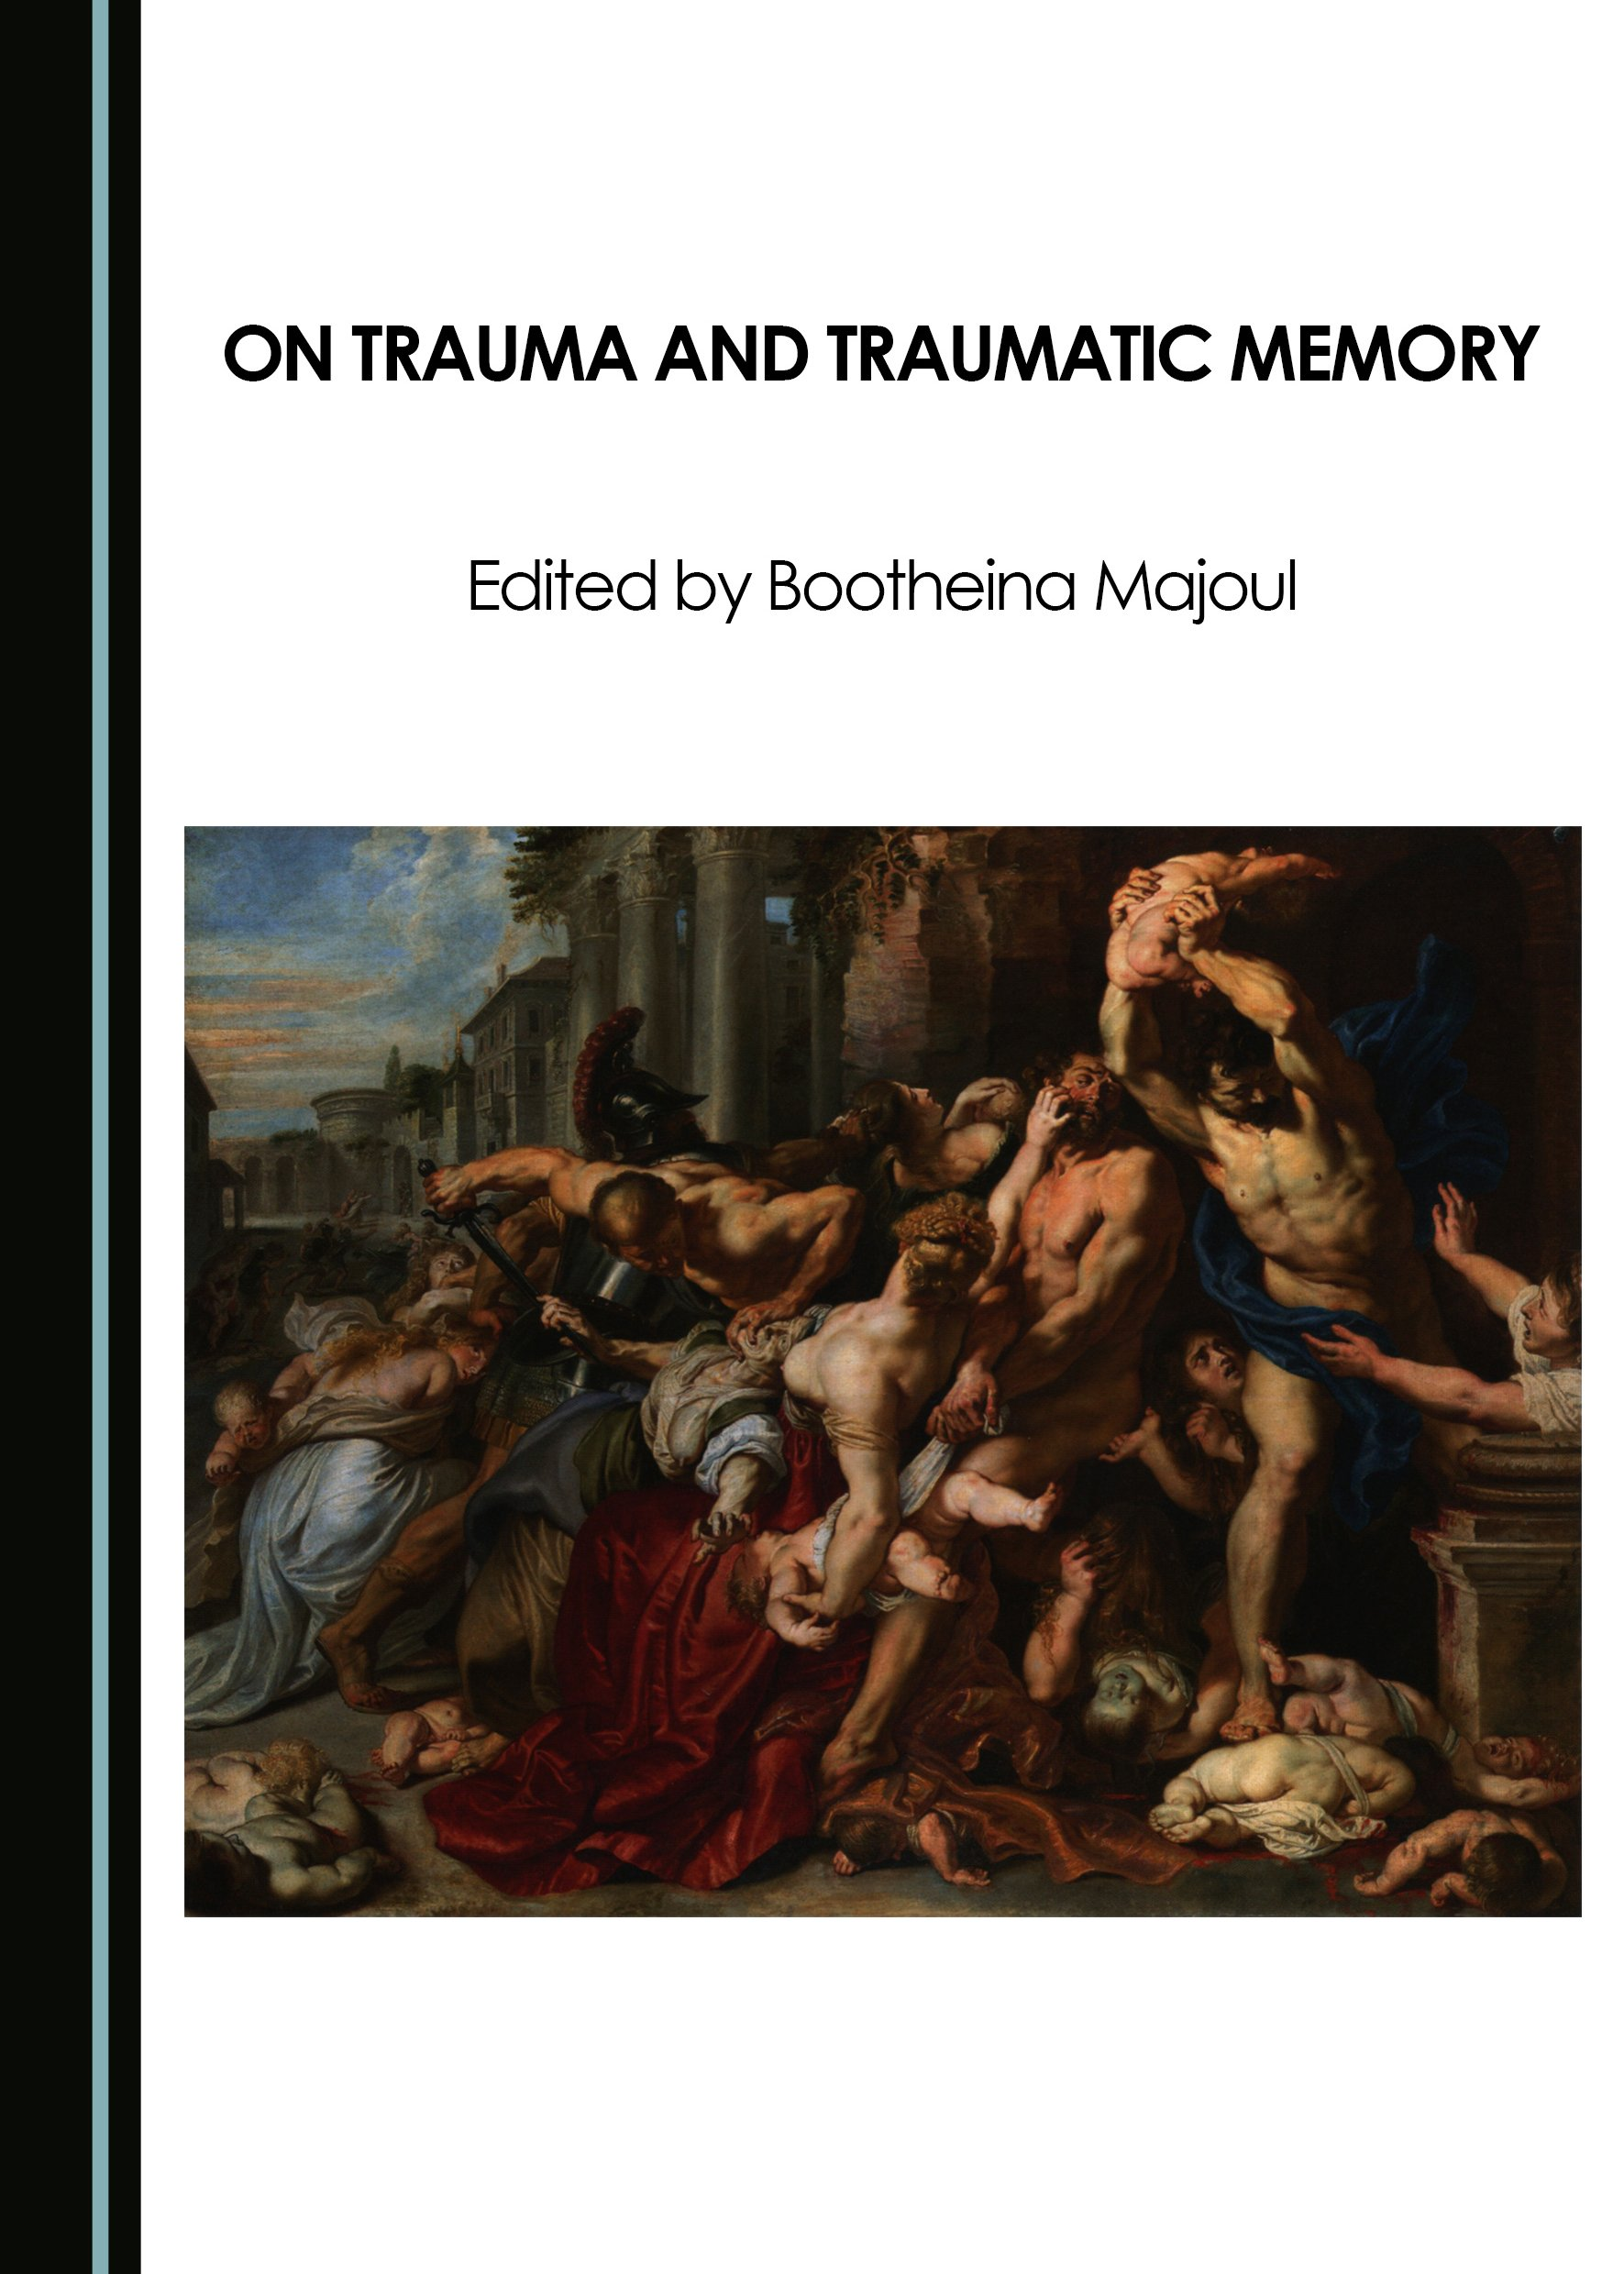 On Trauma and Traumatic Memory